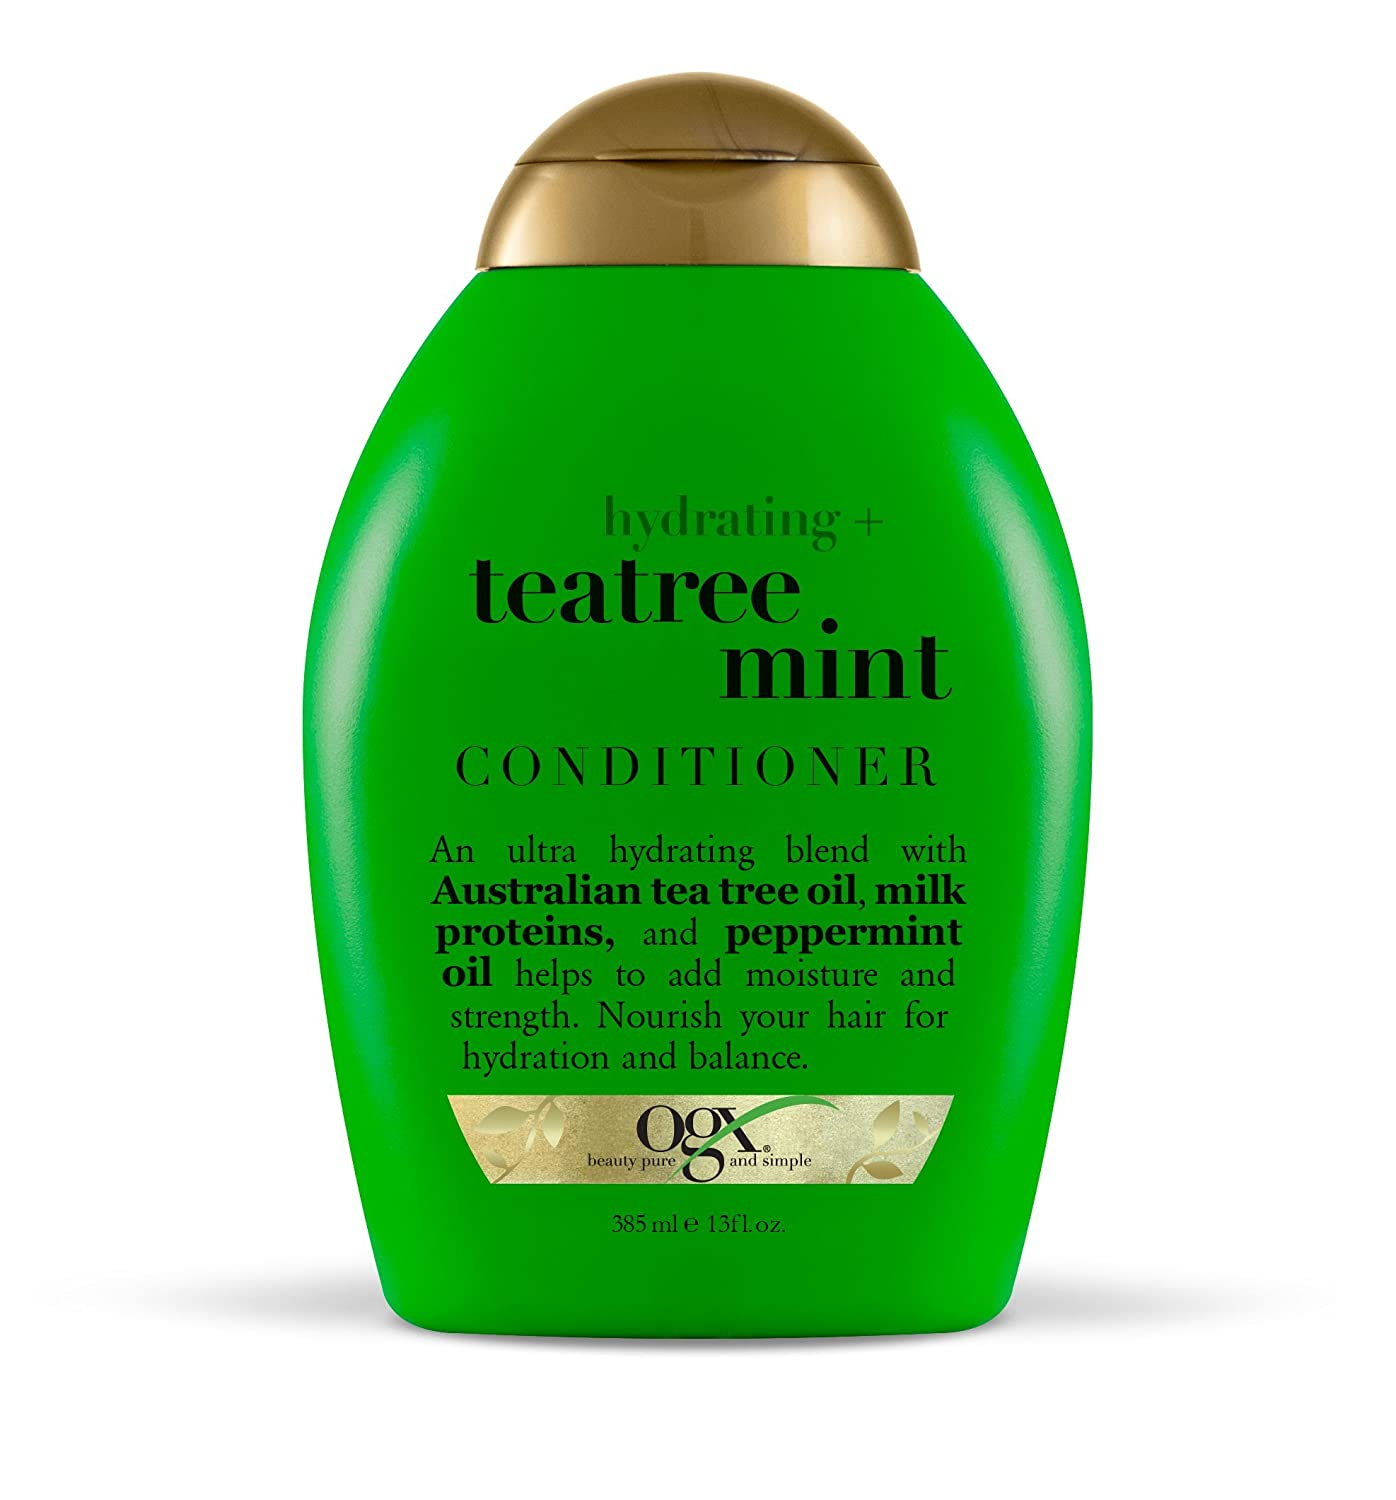 OGX Conditioner, Hydrating TeaTree Mint, (1) 13 Ounce Bottle, Hydrating and Nourishing Conditioner with Australian Tea Tree Oils, Paraben Free, Sustainable Ingredients